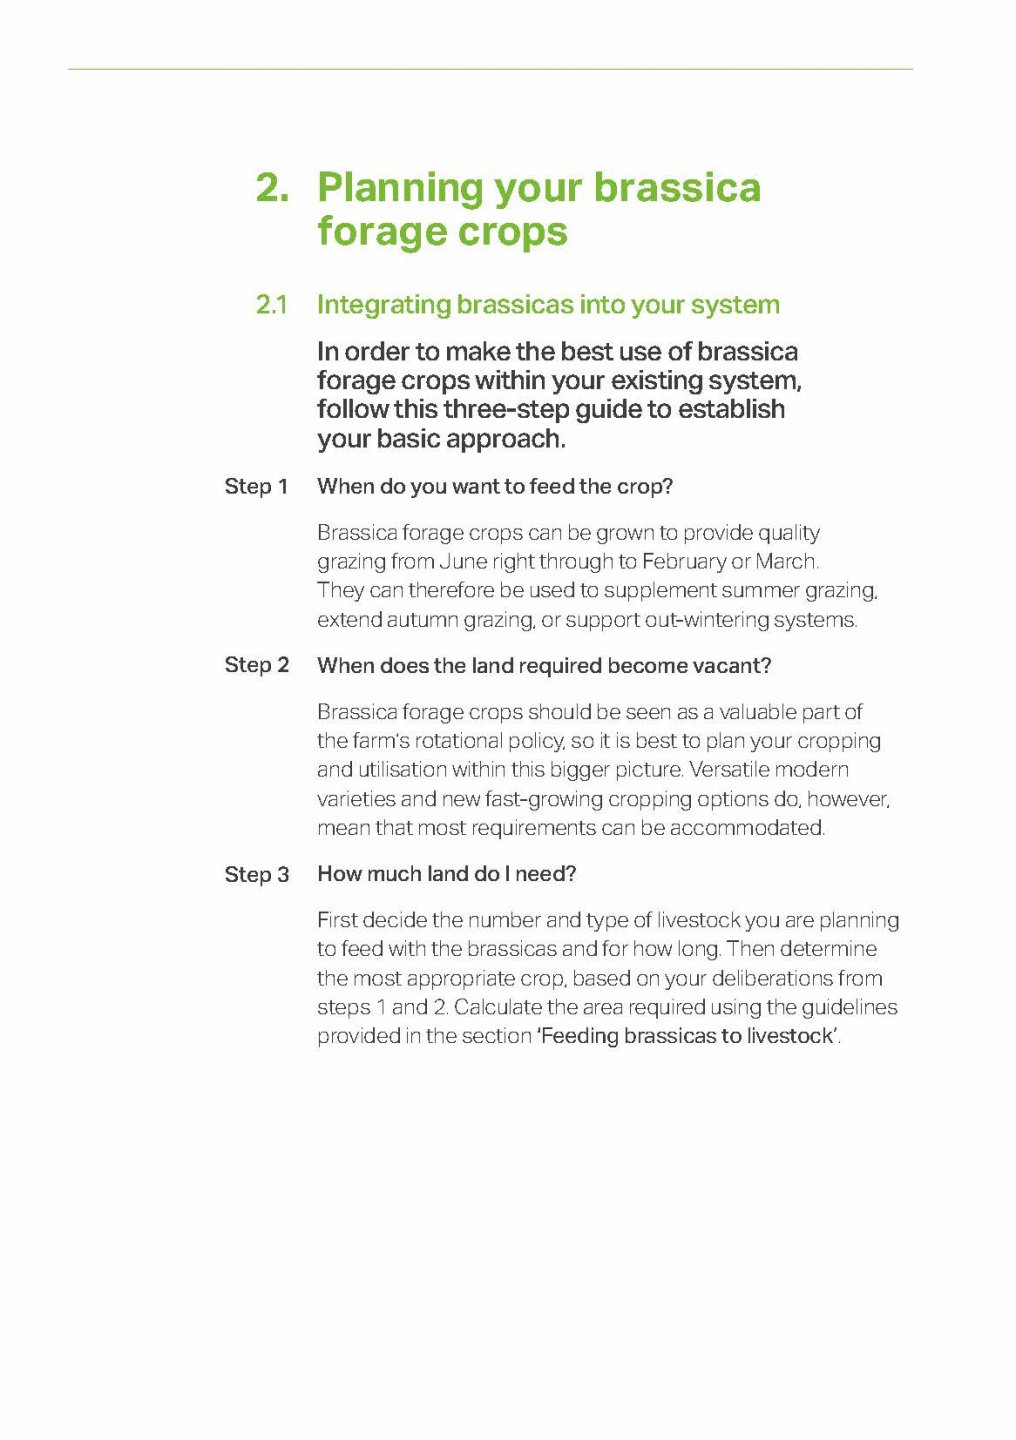 GGB_AGRI_107_Brassica_Growers_guide_2020_Page_04.jpg